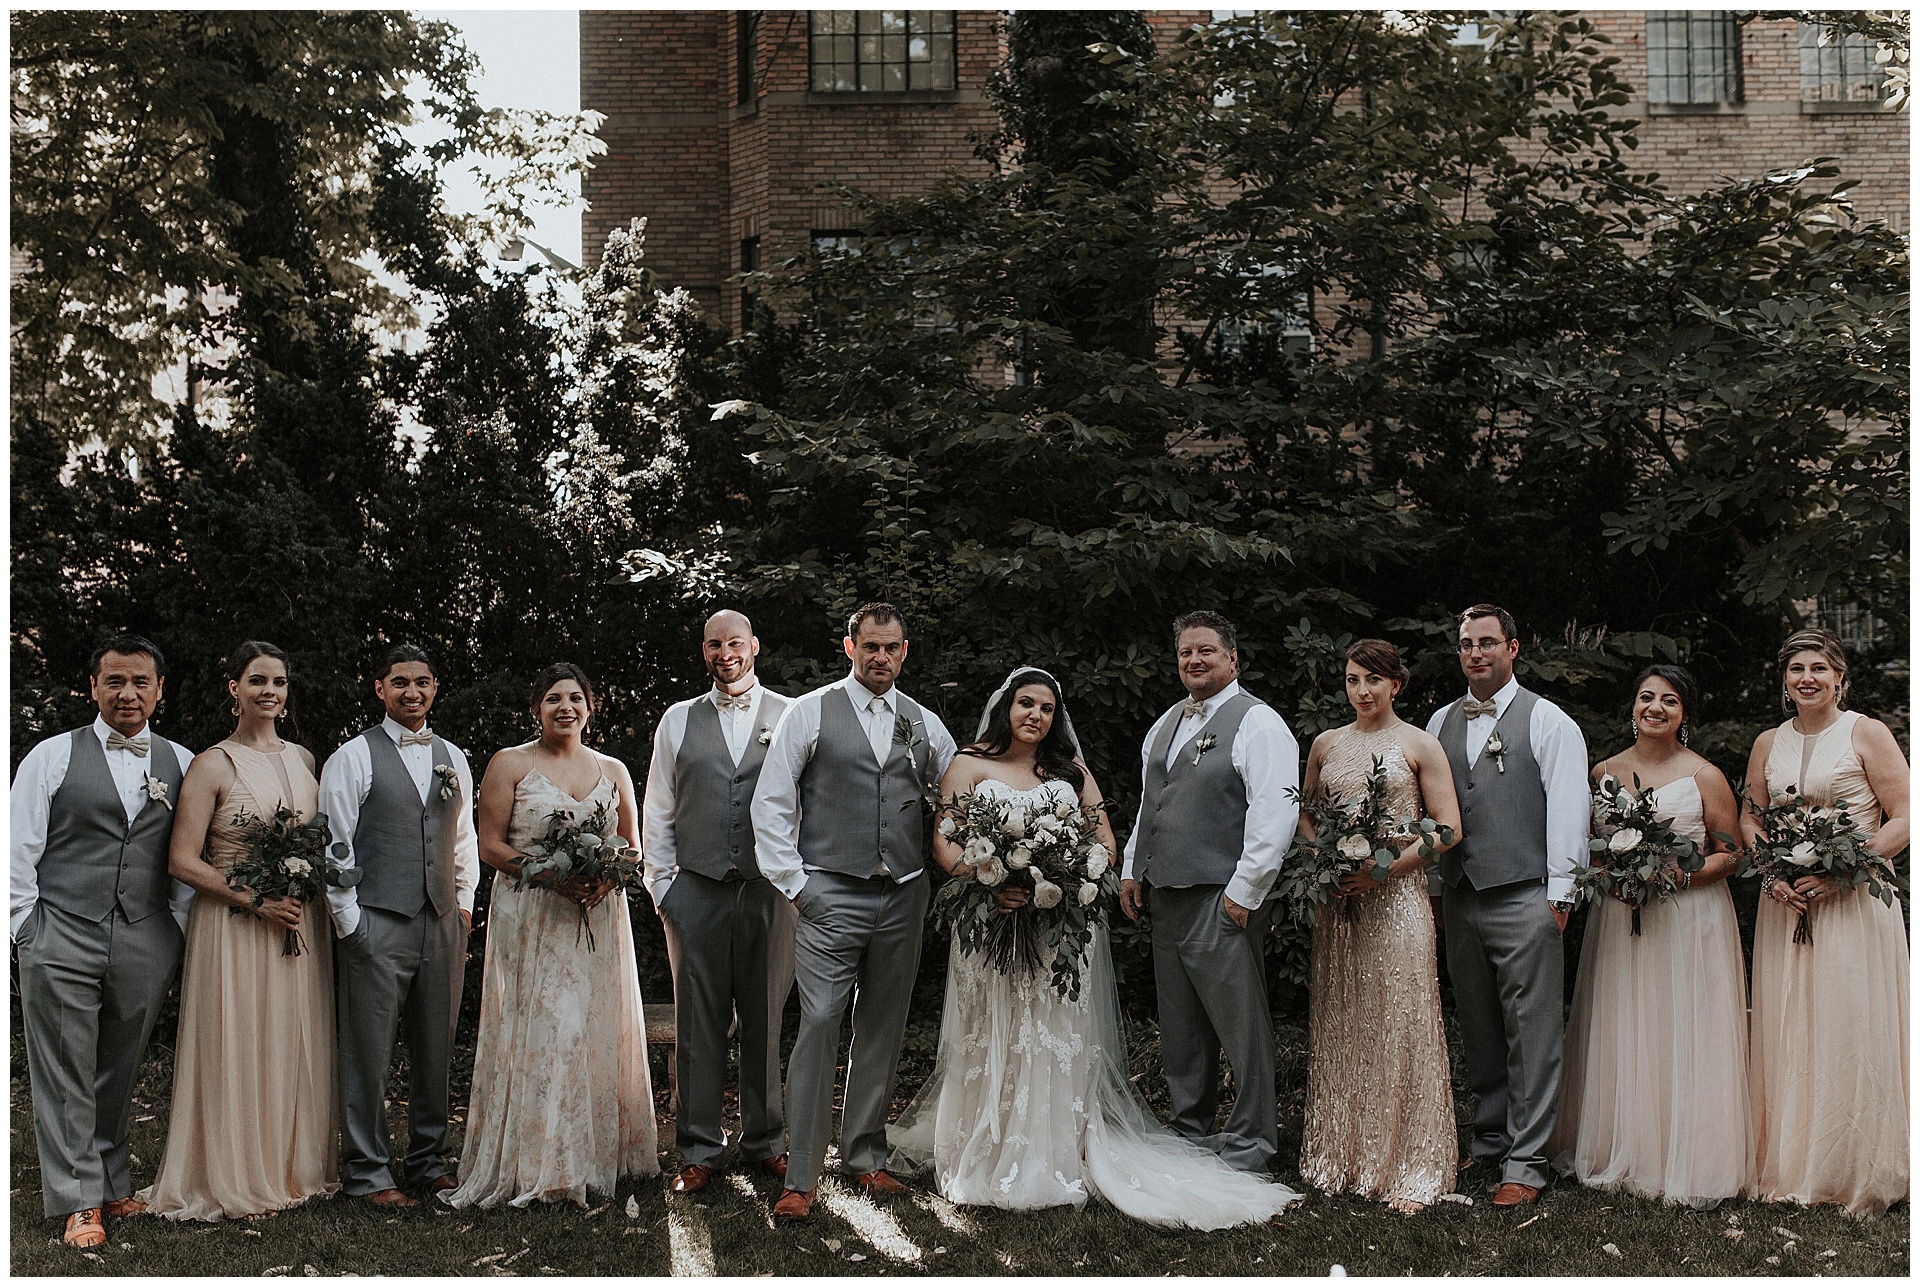 kelton house wedding columbus ohio_mia dimare photo41.jpg